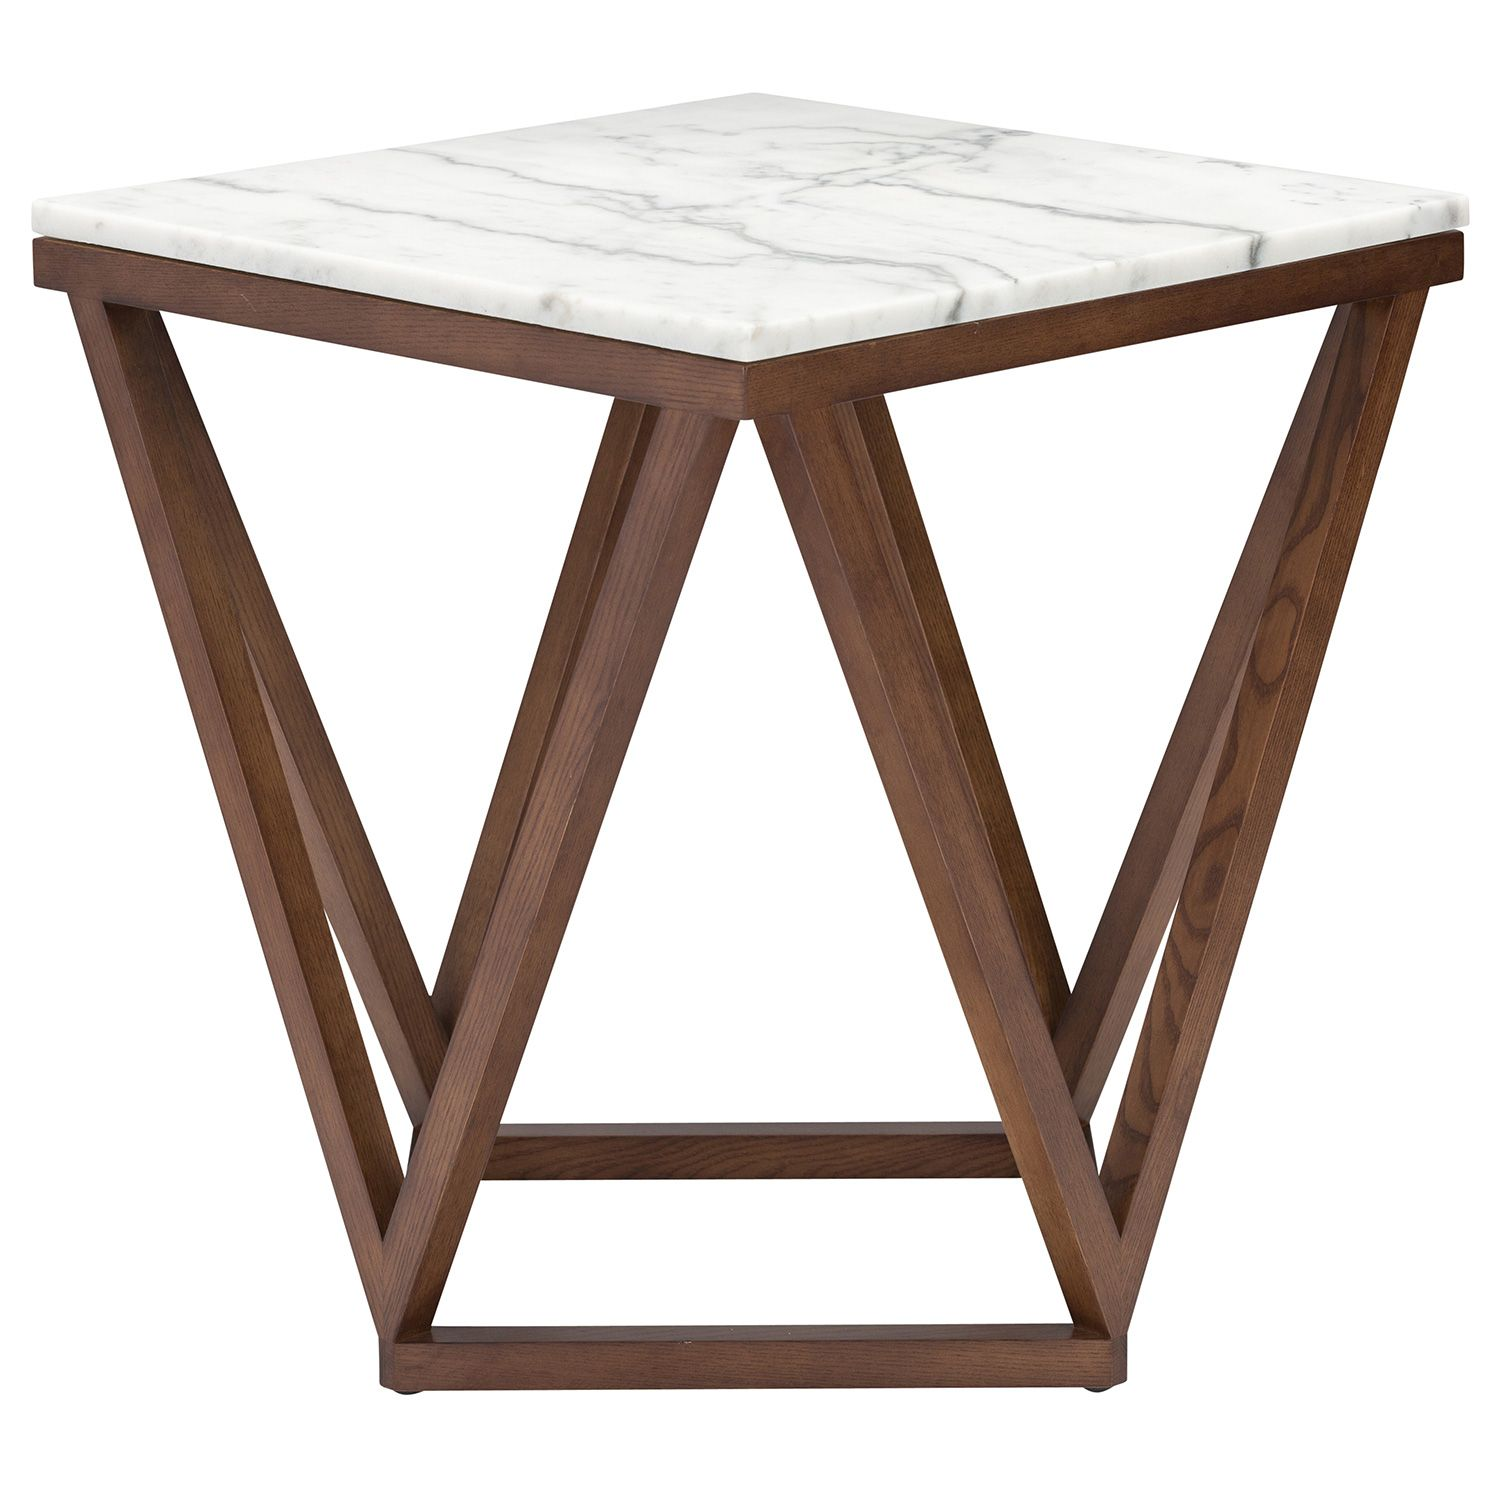 nuevo jasmine white marble side table zinc door accent round cloth outdoor dining furniture cream coffee small cherry tall nightstands inch console screen porch wide tablet eagle